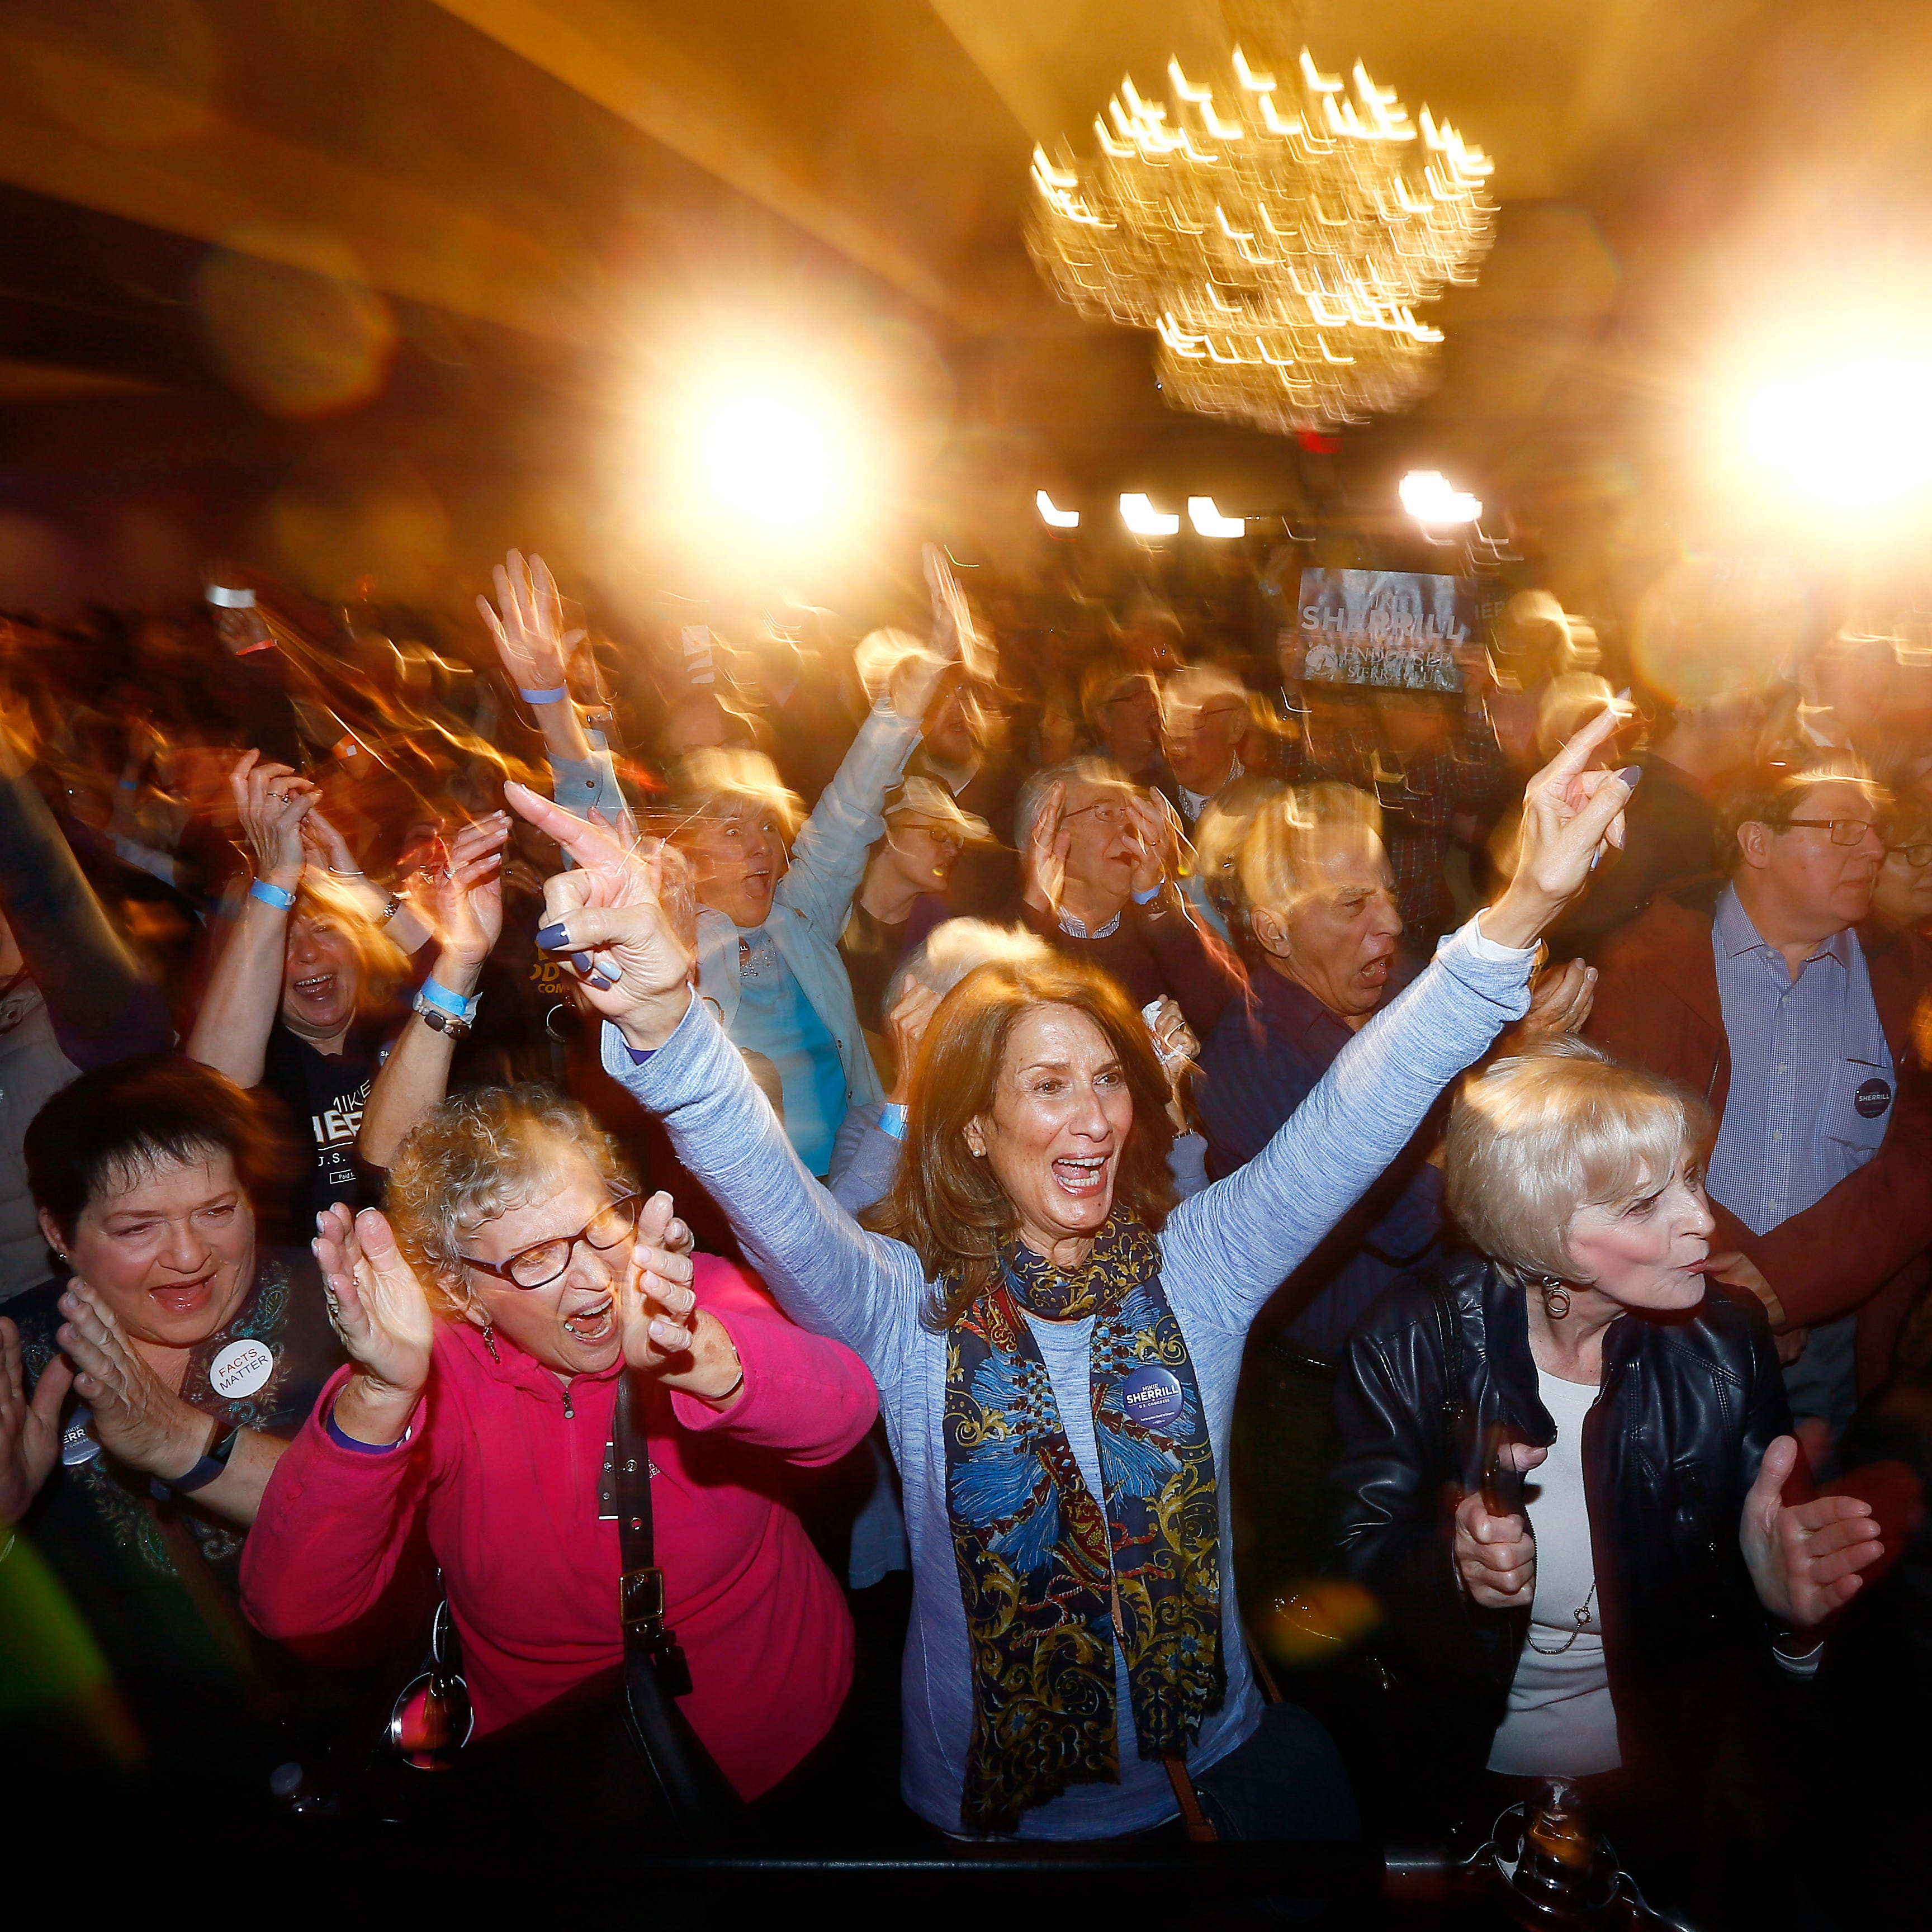 Supporters of Mikie Sherrill explode into cheers as CNN names her the winner for the NJ 11th Congress seat at the Parsippany Sheraton.